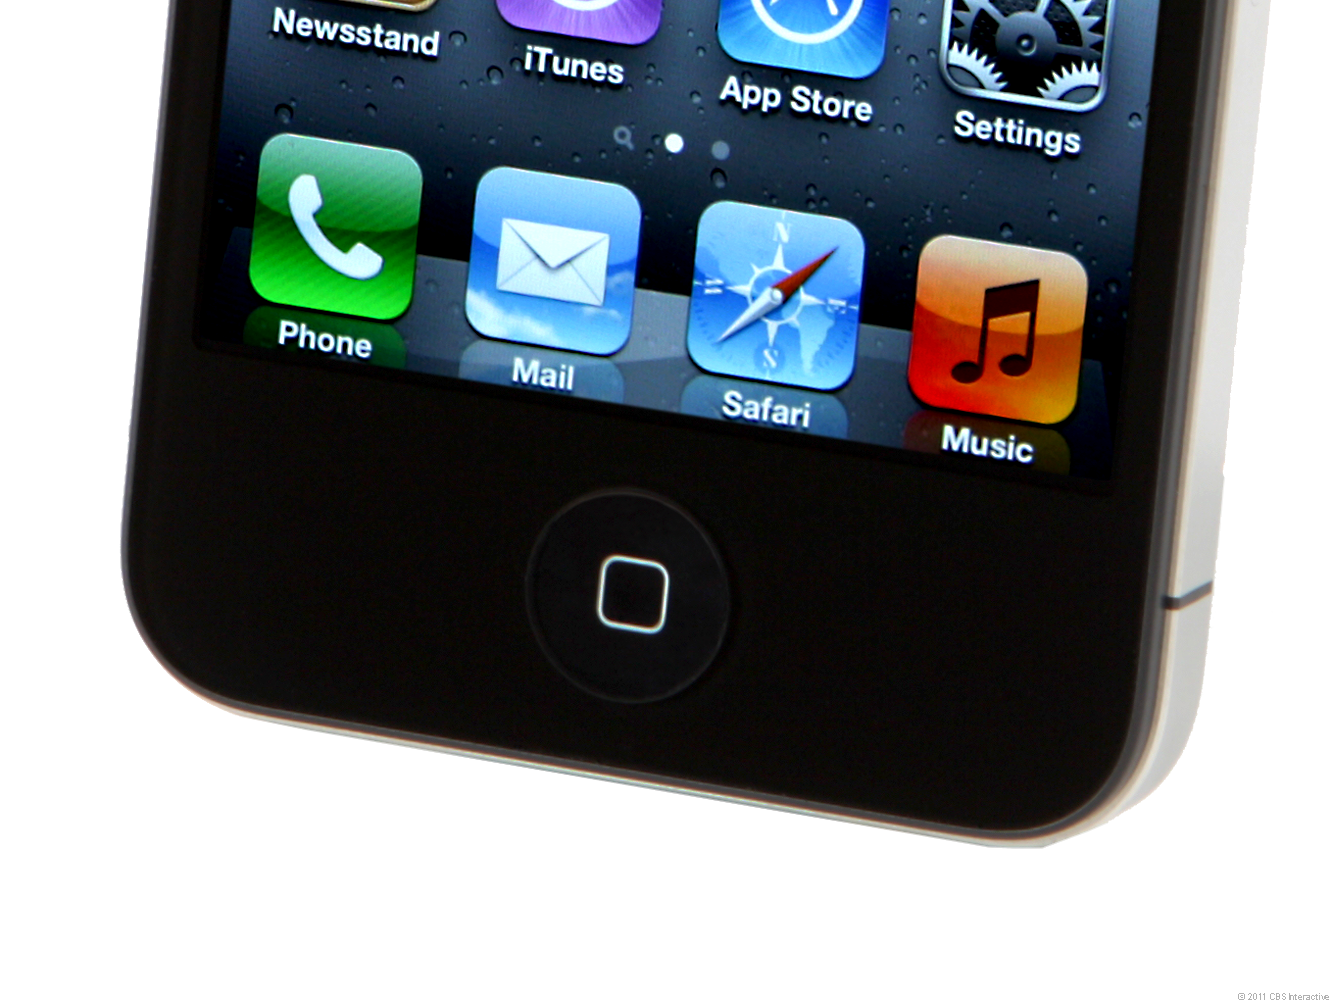 Apple iPhone 4S - 64GB - black (Sprint)